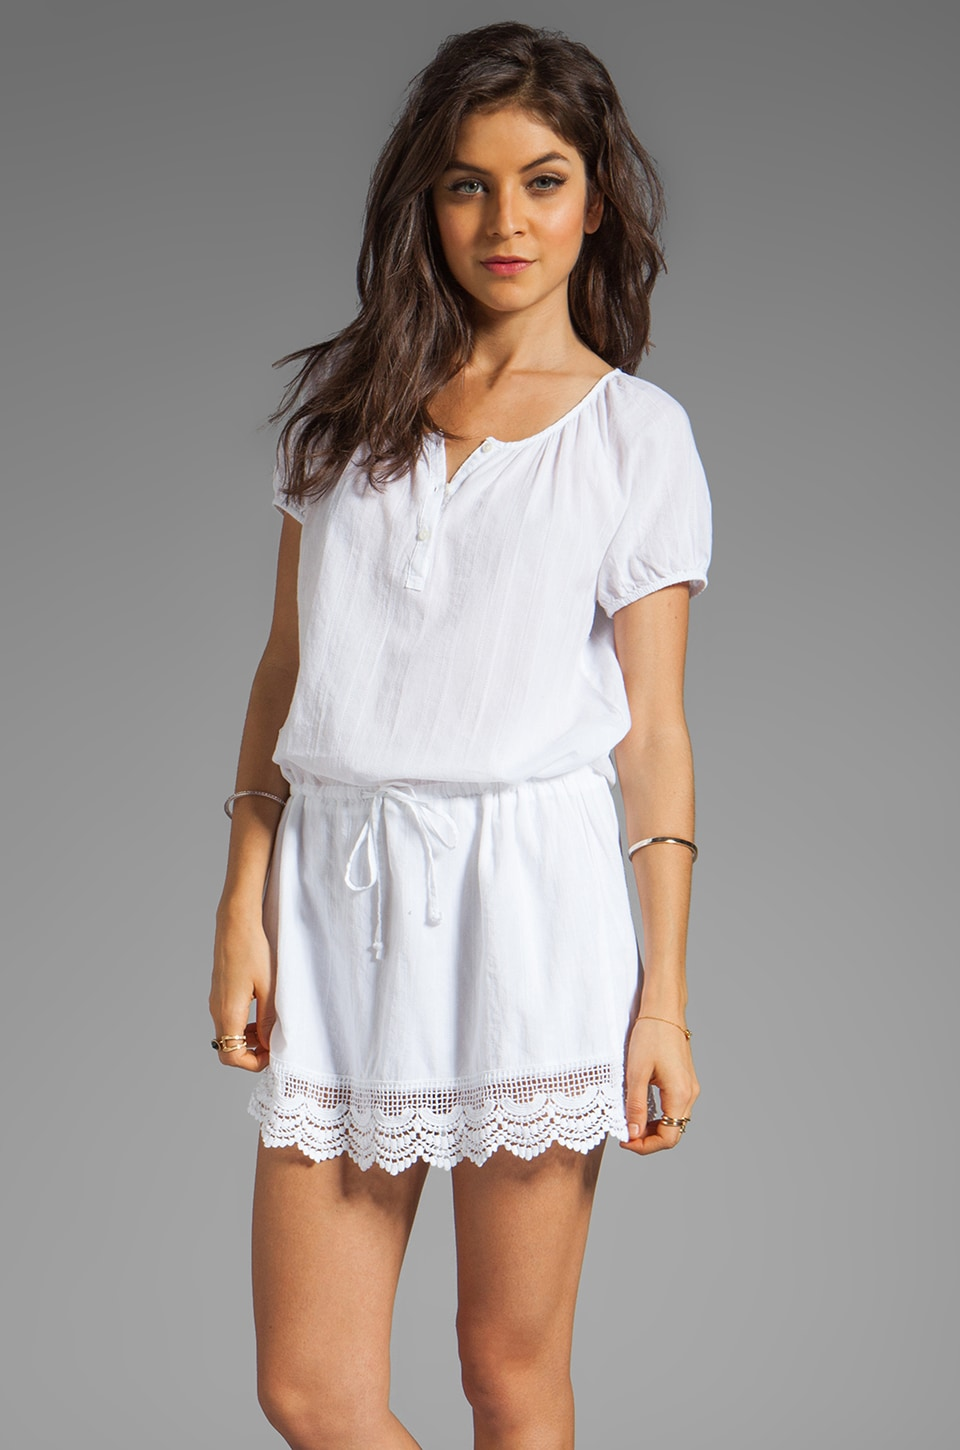 C&C California Textured Cotton Short Sleeve Split Neck Dress With Lace in White